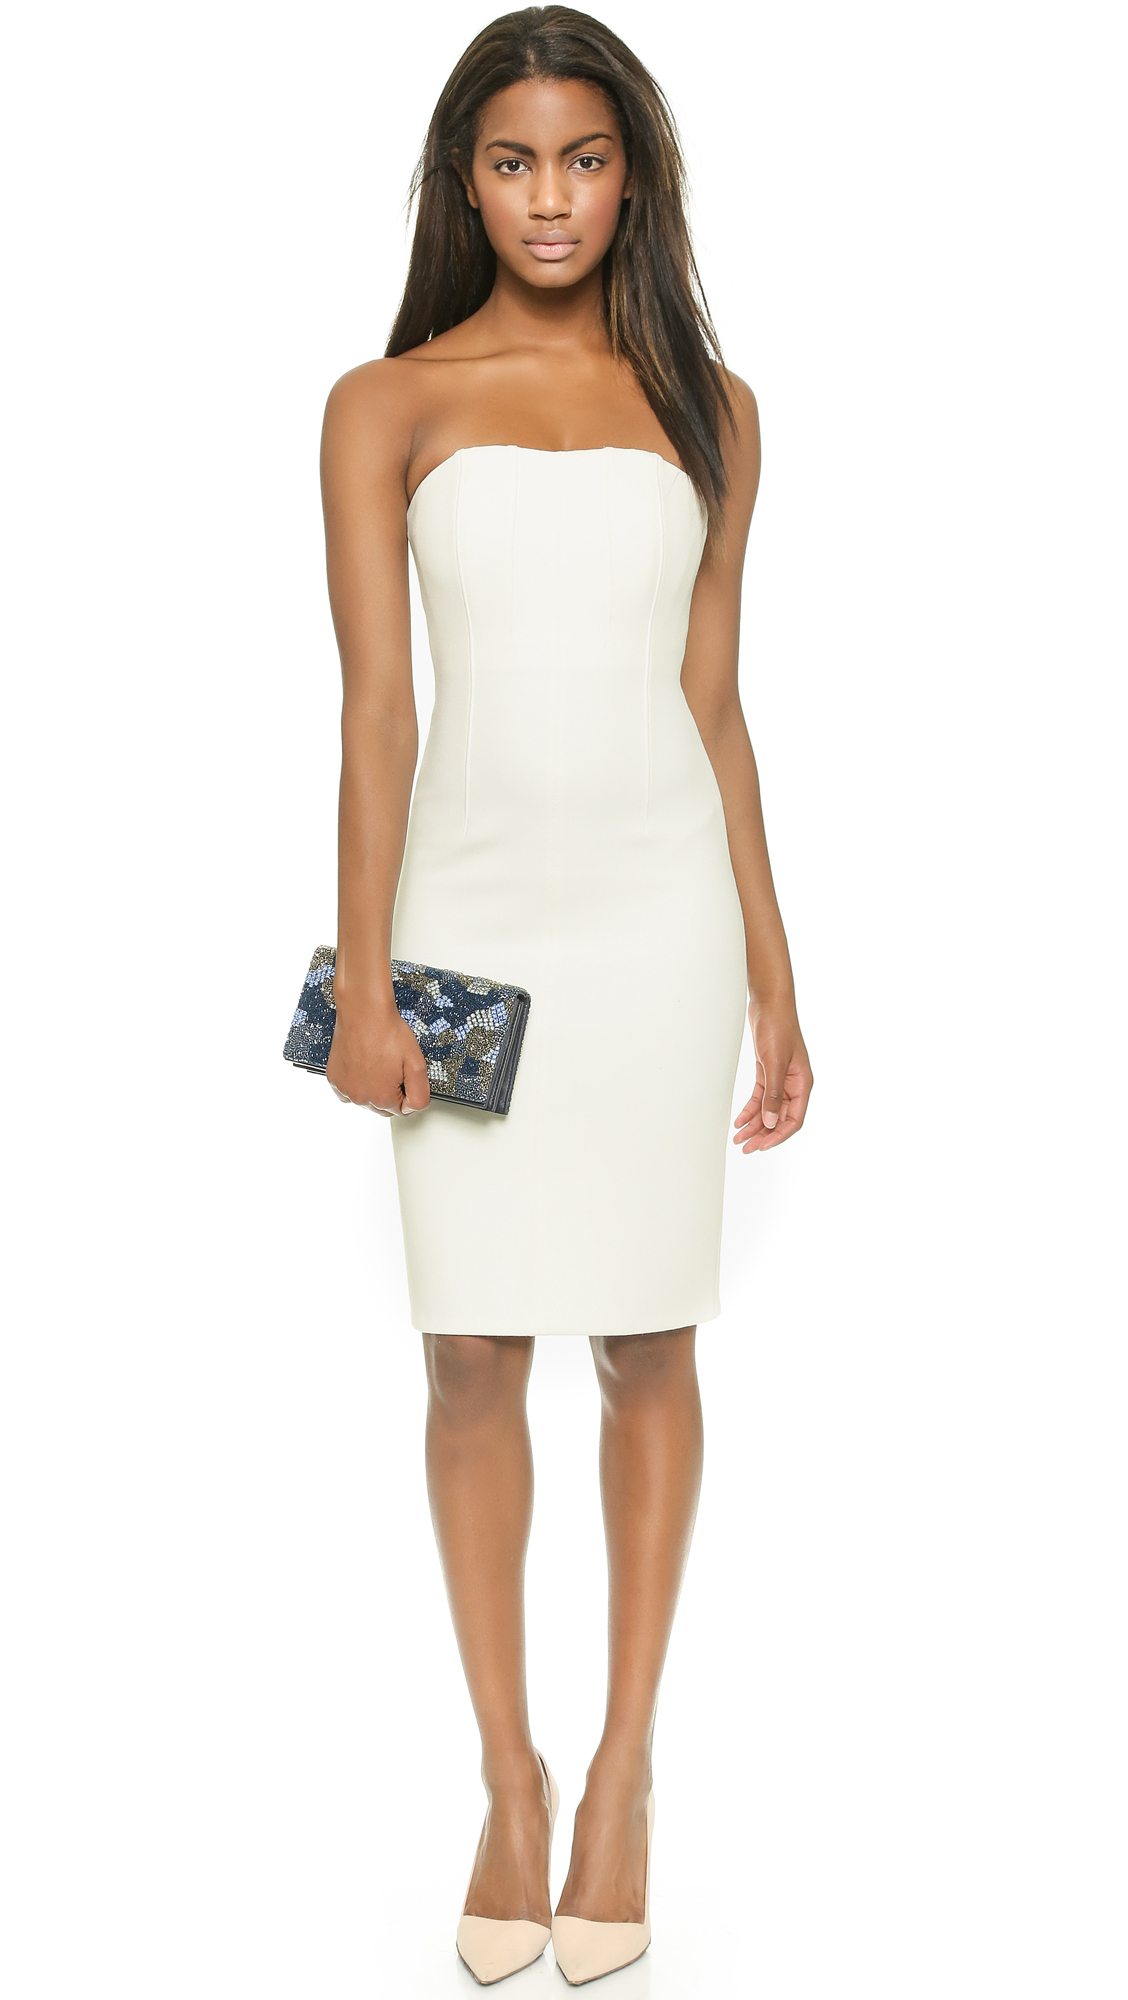 Shop by Color White Dresses Black Dresses Red Dresses Blue Dresses Green Dresses Purple Dresses Teal Dresses Pink Dresses Peach Dresses Grey Dresses Coral and Orange Dresses Taupe Dresses Yellow Dresses. Lulus You Belong With Me White and Nude Lace Strapless Maxi Dress $ + More. Lulus Love Poem Ivory Lace Dress $